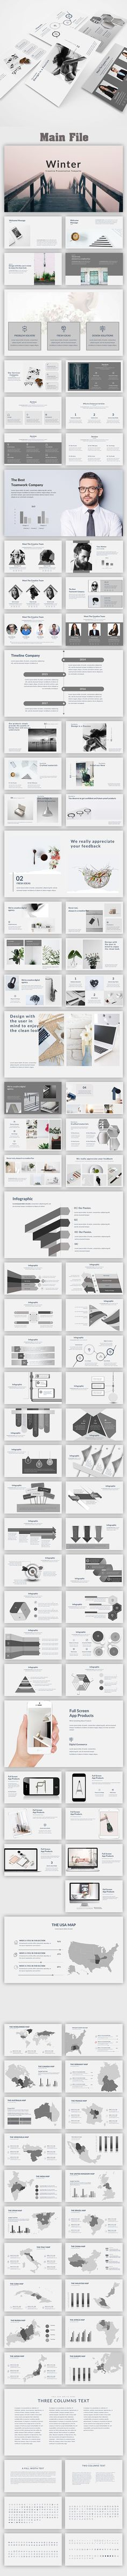 Winter Minimal PowerPoint Template - Creative PowerPoint Templates #powerpoint